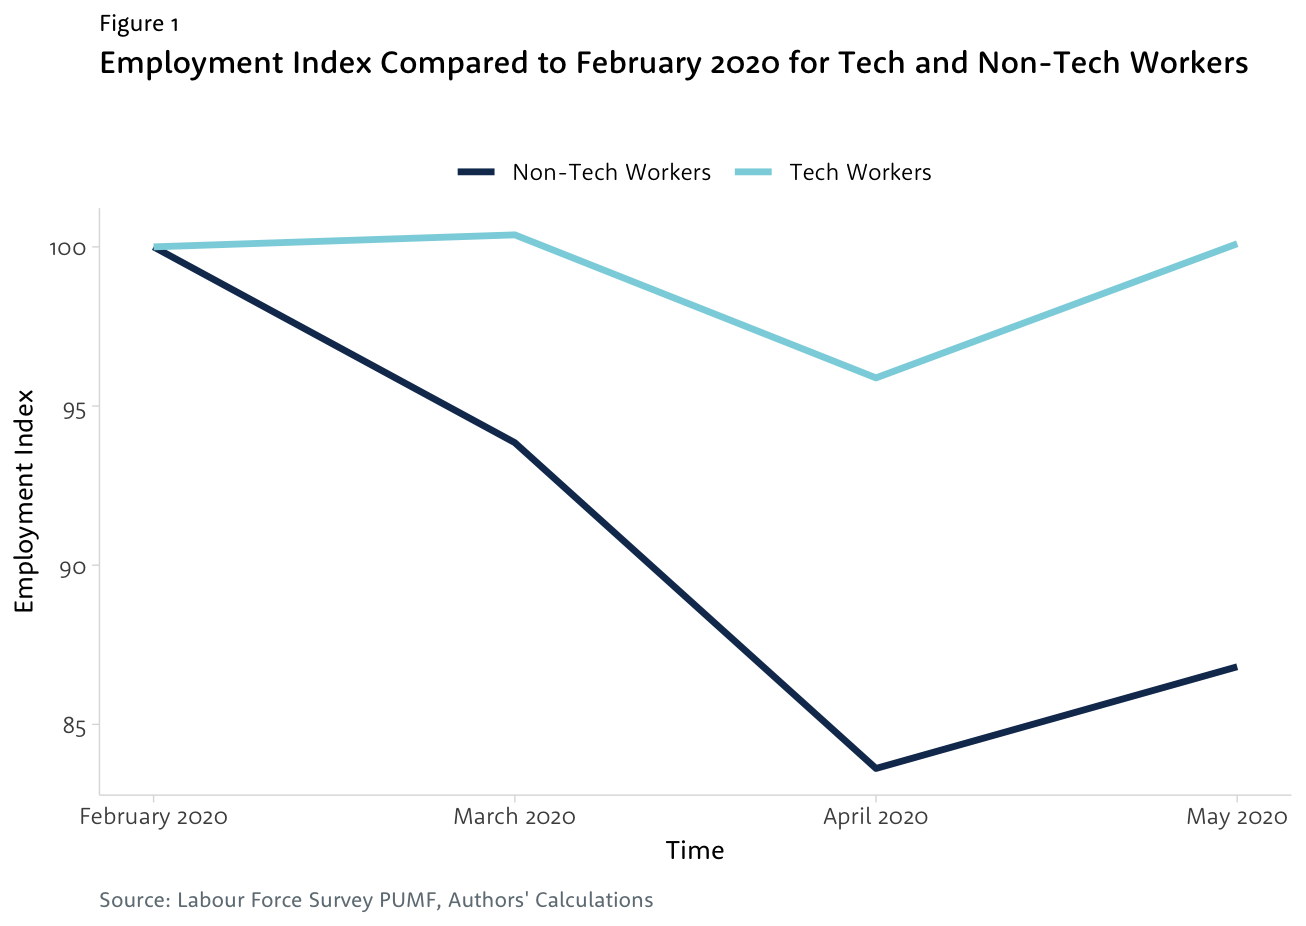 Line graph comparing change in employment index between tech and non-tech workers since February 2020.